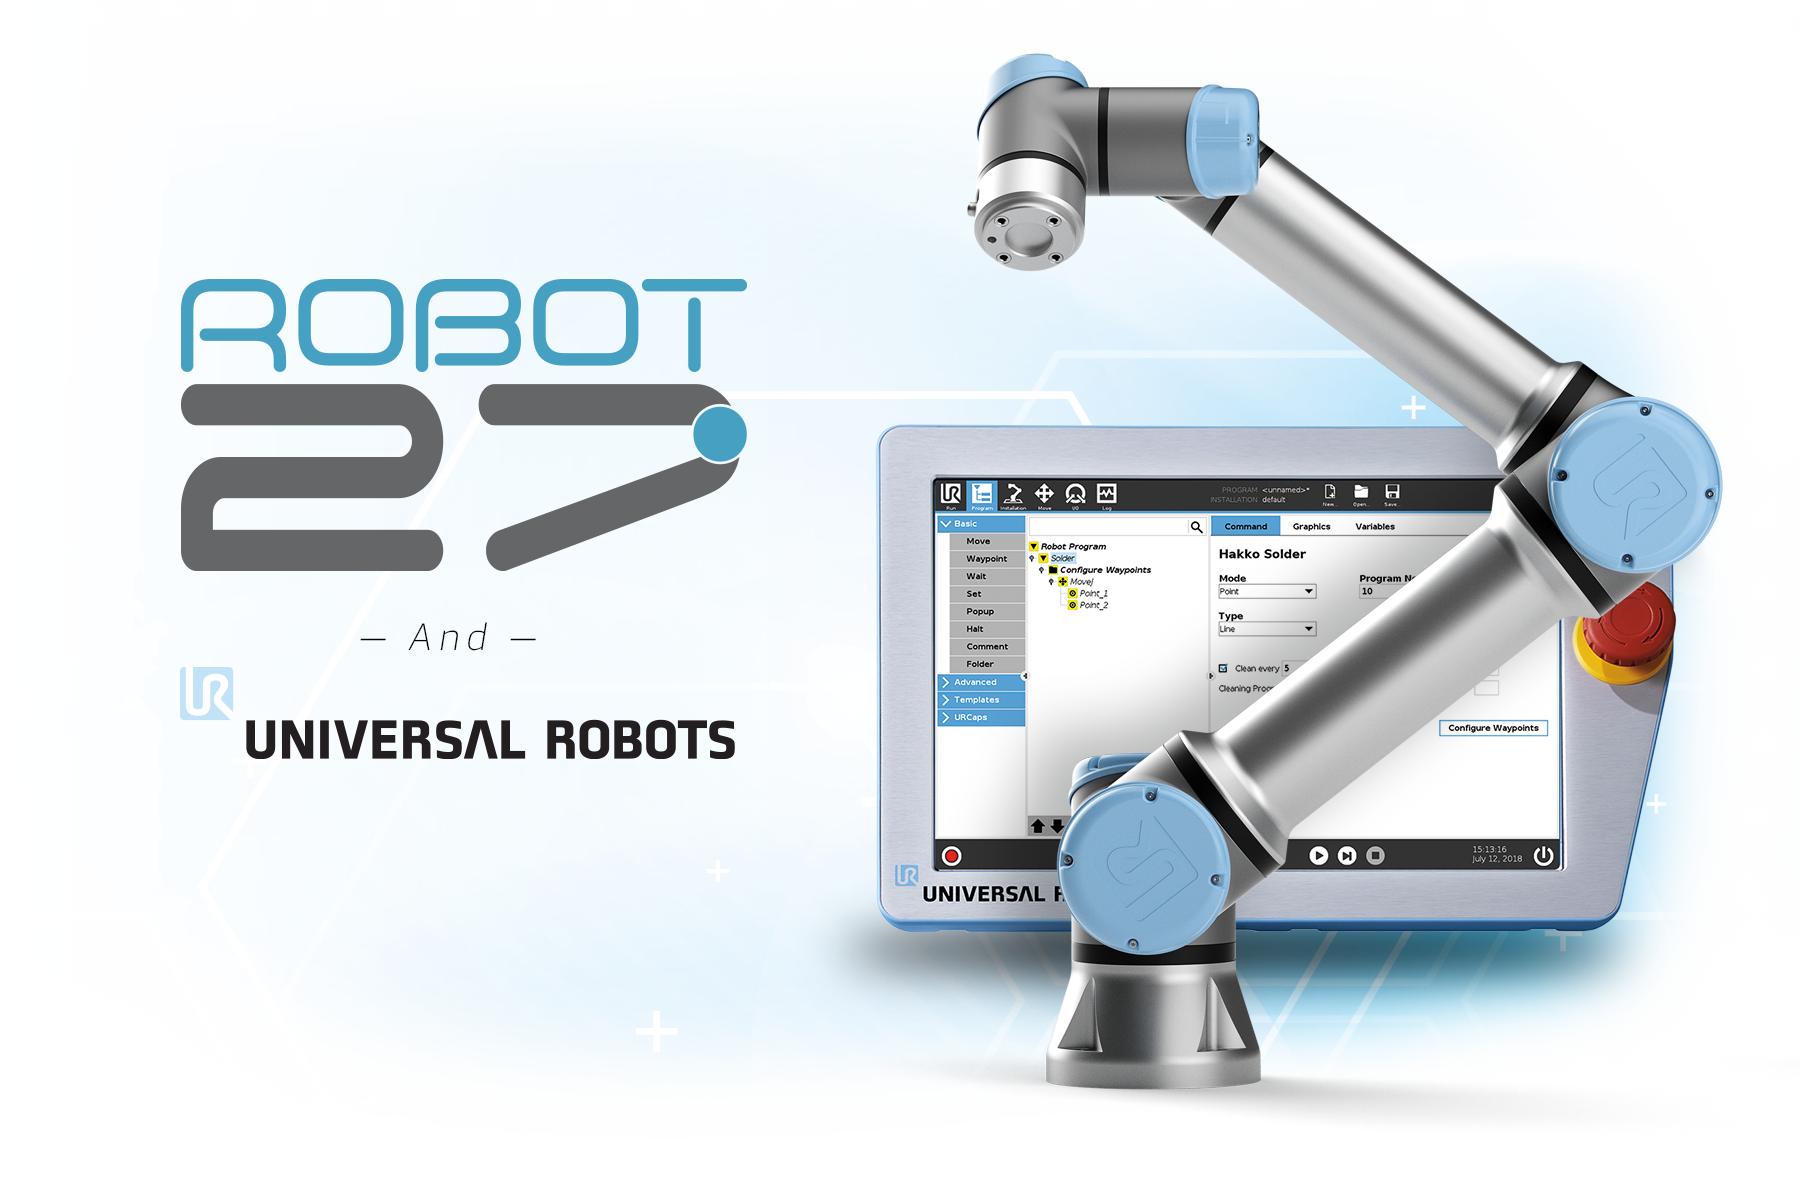 Robot 27 & Universal Robots - Robot arm with programming pad